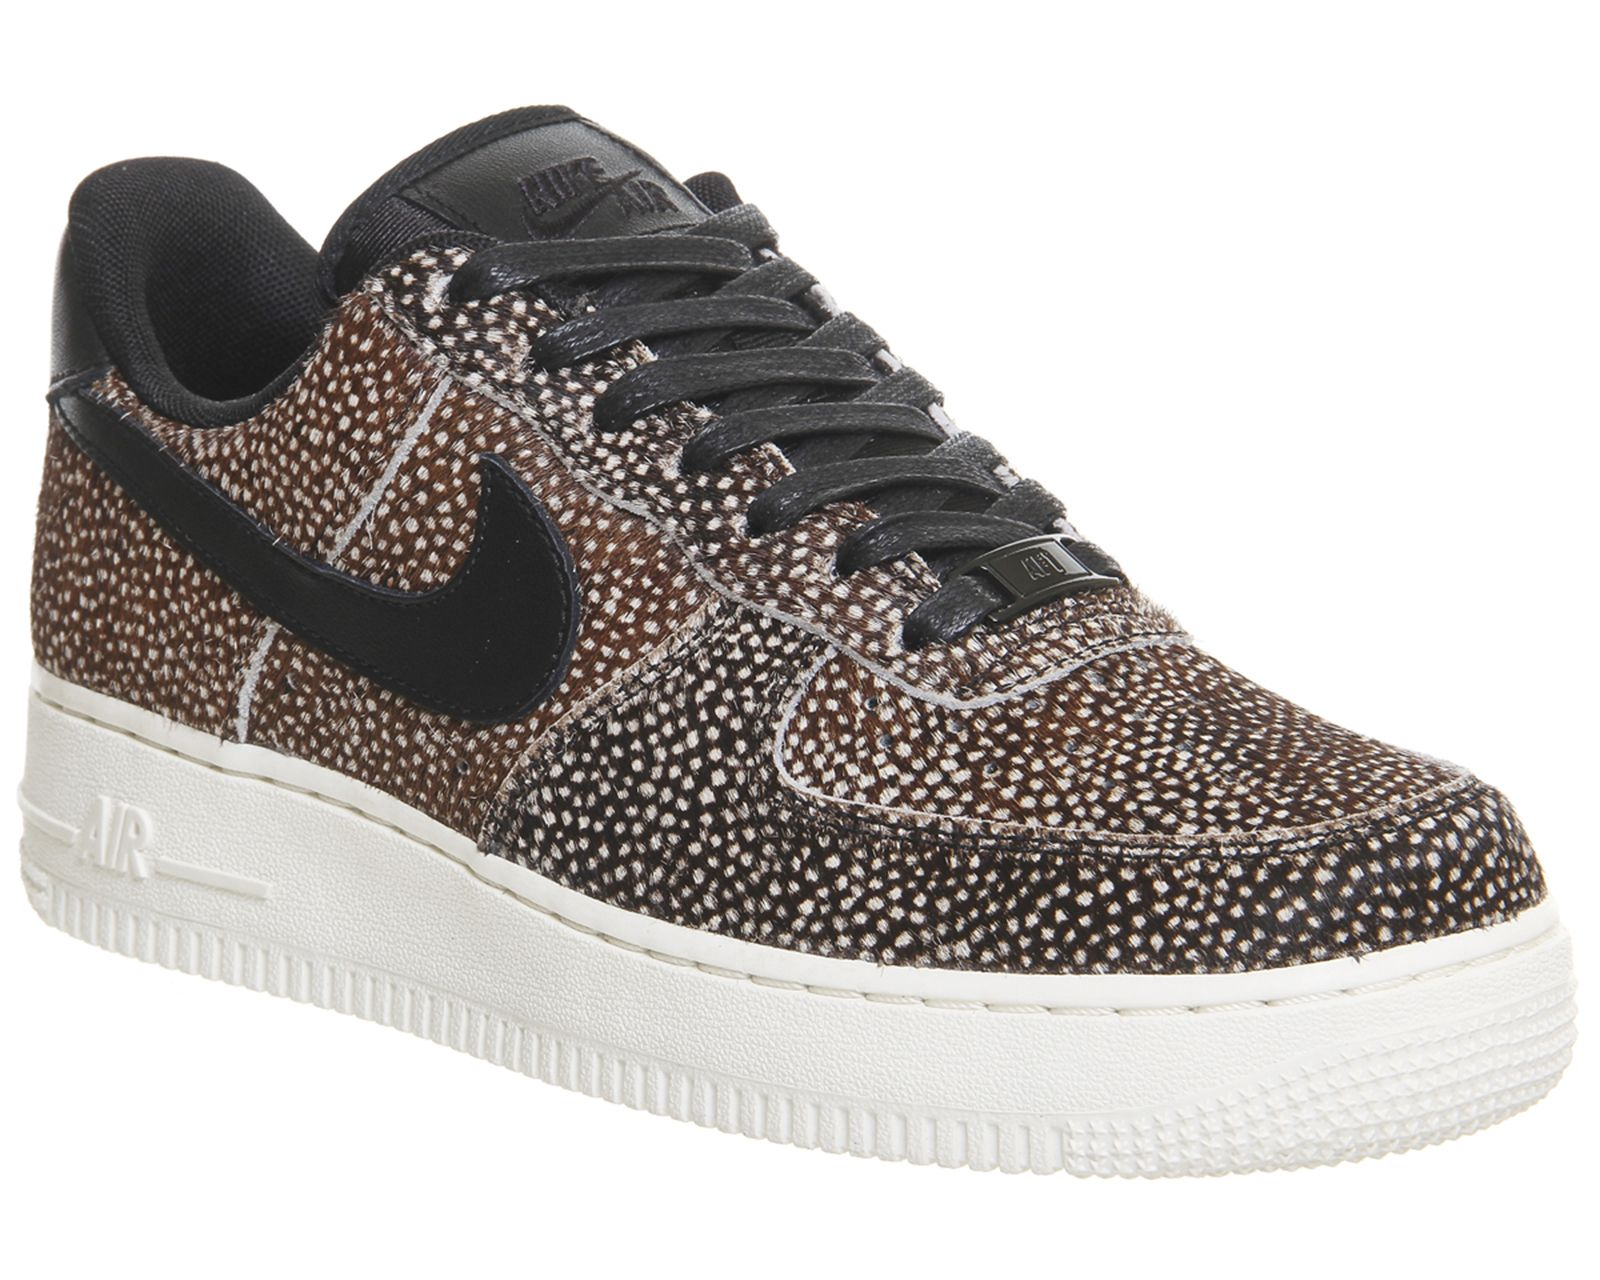 Nike air force 1 mid premium thanksgiving sold out - Nike Air Force 1 Lo Stingray Black Sail